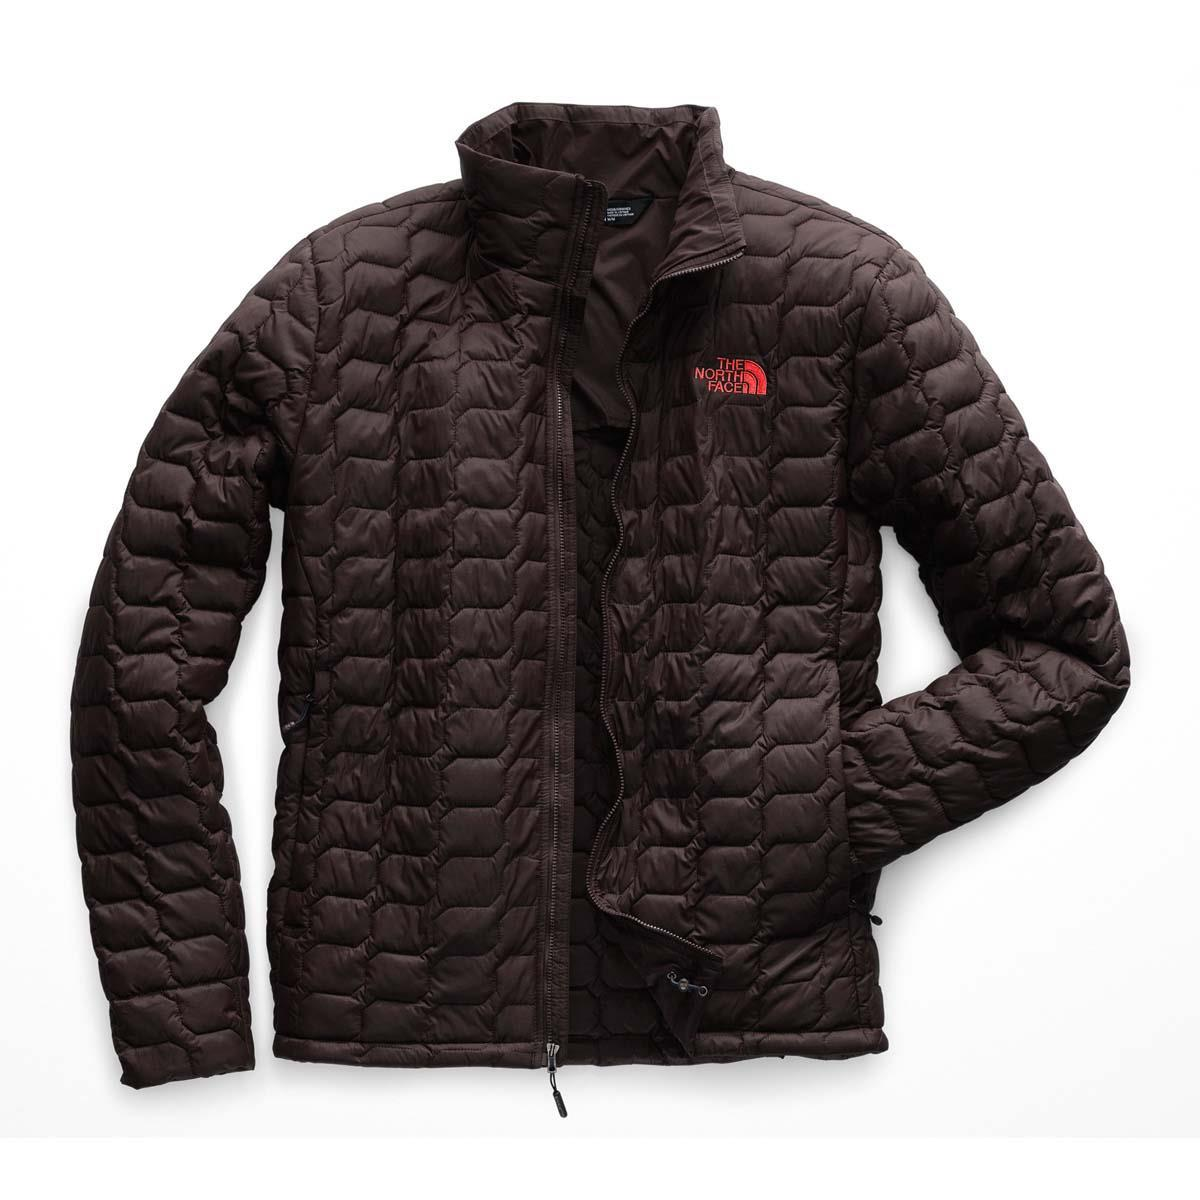 0b754c1cc The North Face Thermoball Jacket - Men's